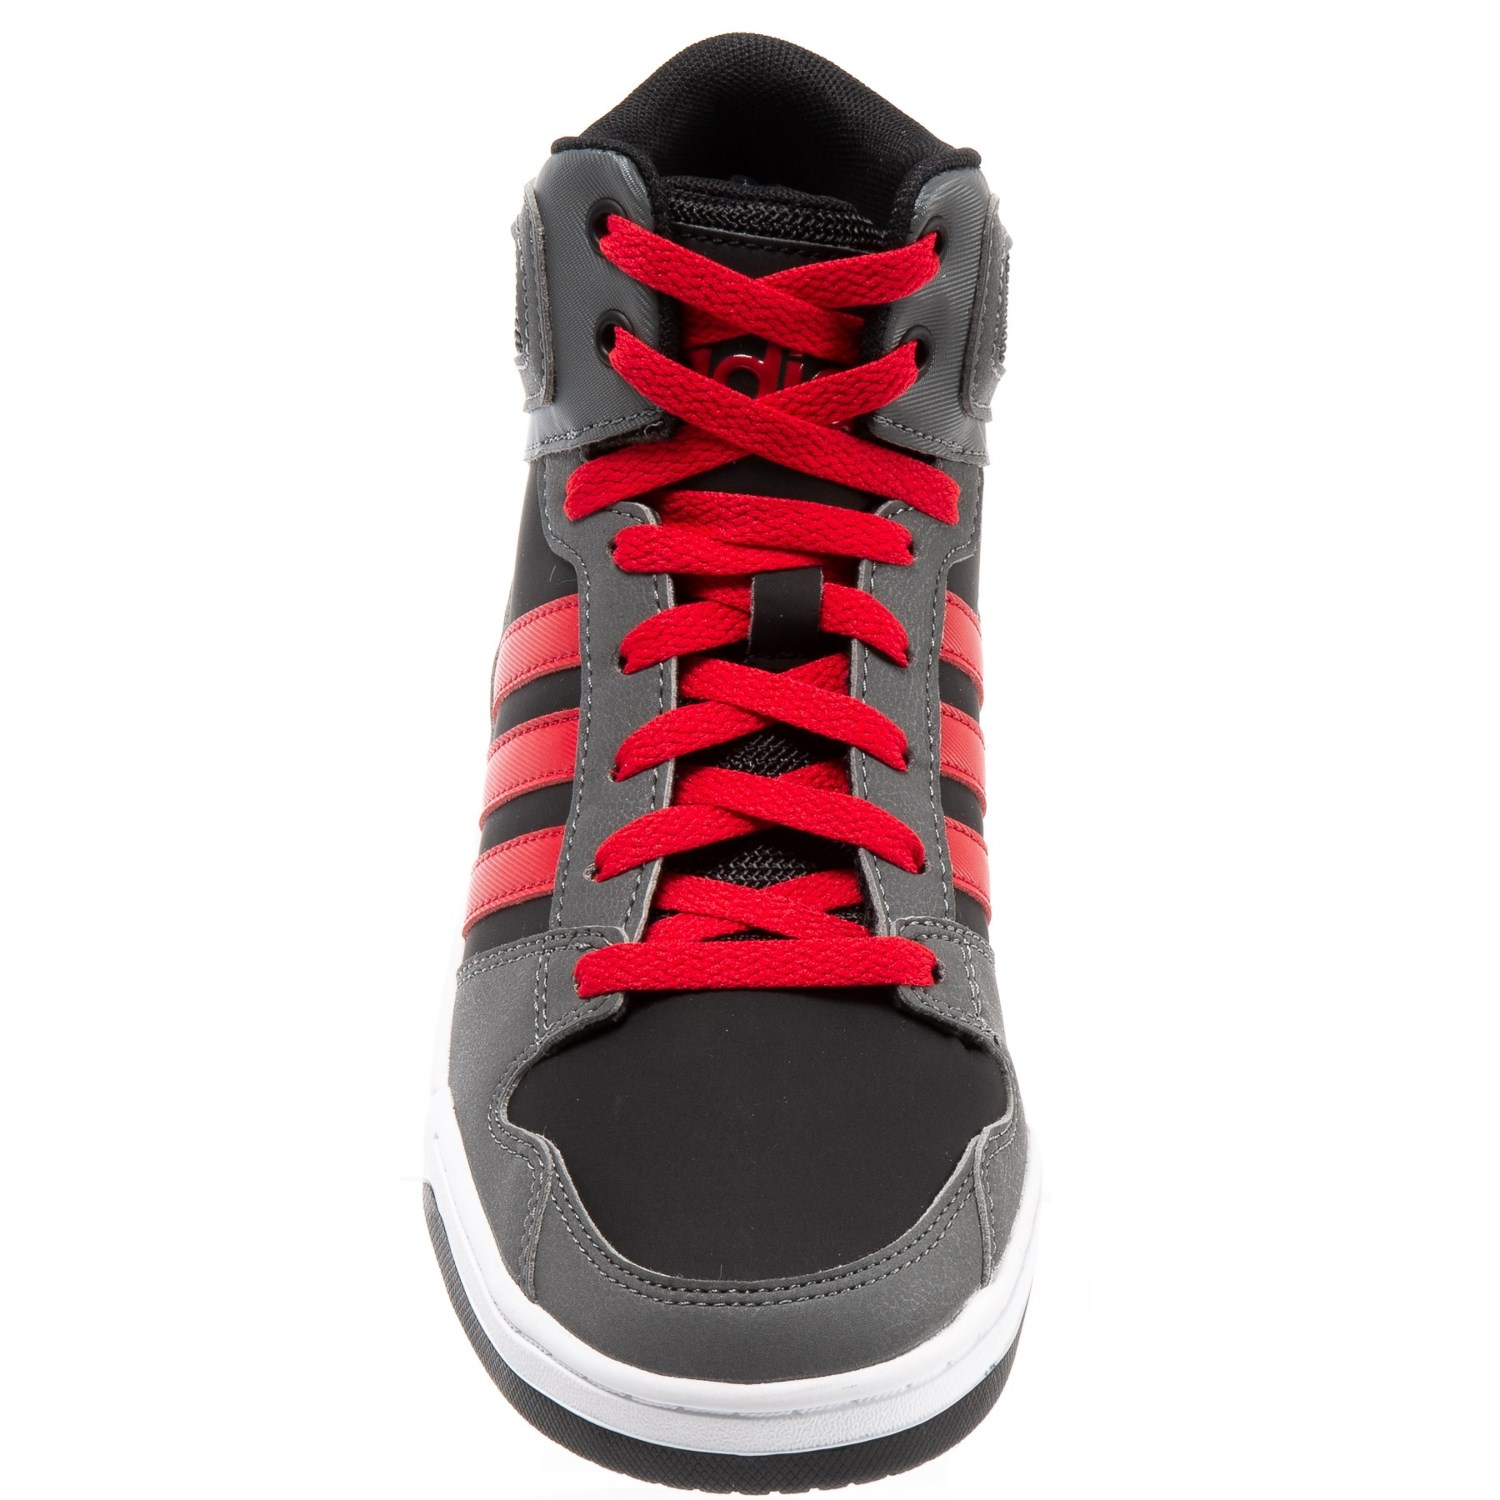 best service 787c8 eae34 ... closeout adidas neo bb9tis mid k sneakers for big and little kids 8dcf2  b4332 ...